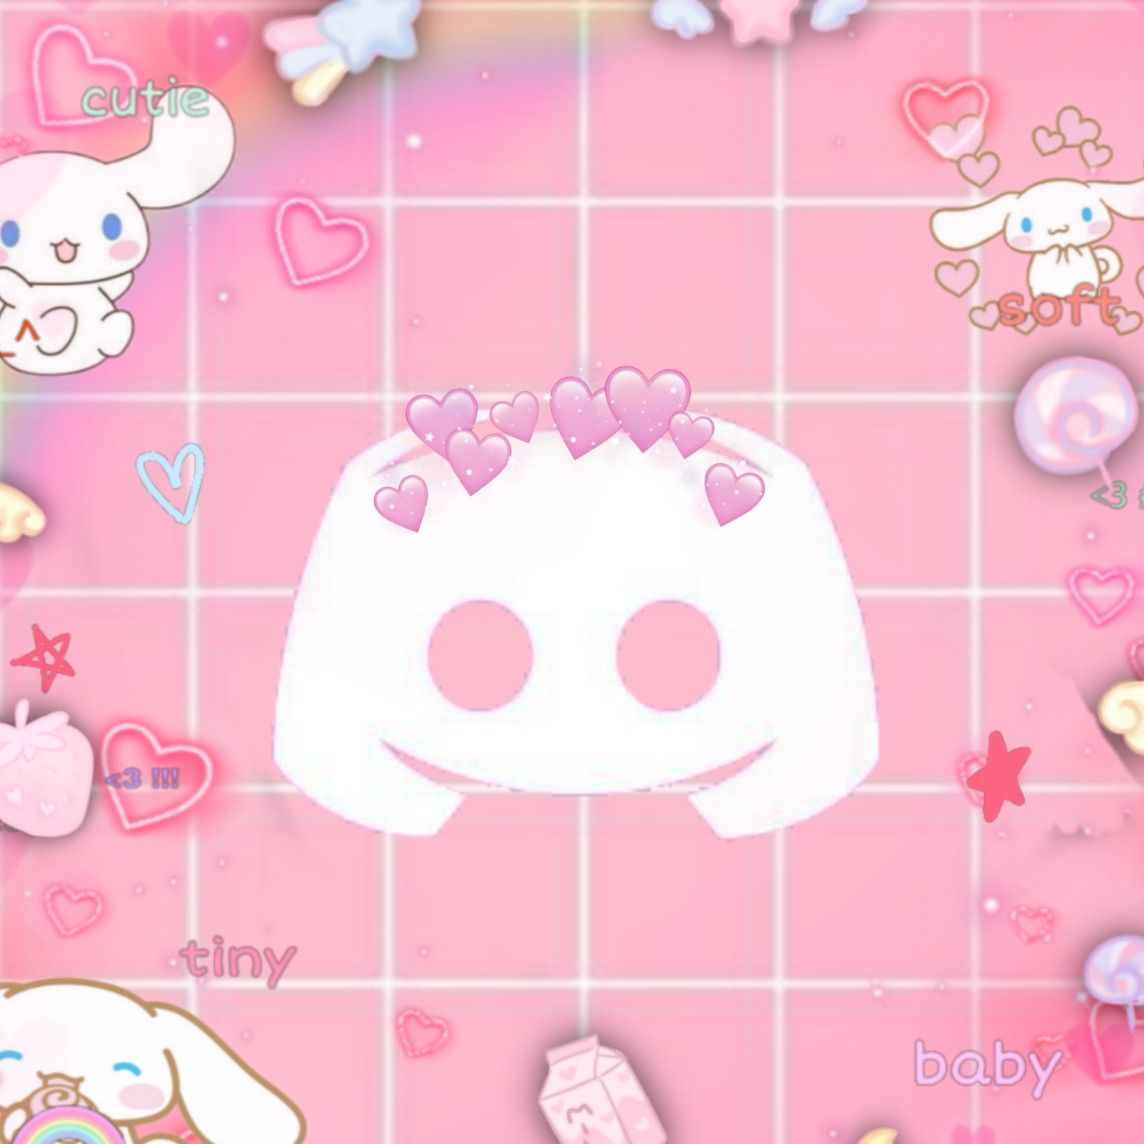 Discord Icon Pink Aesthetic In 2020 Pink Aesthetic Pink Music Cute Icons